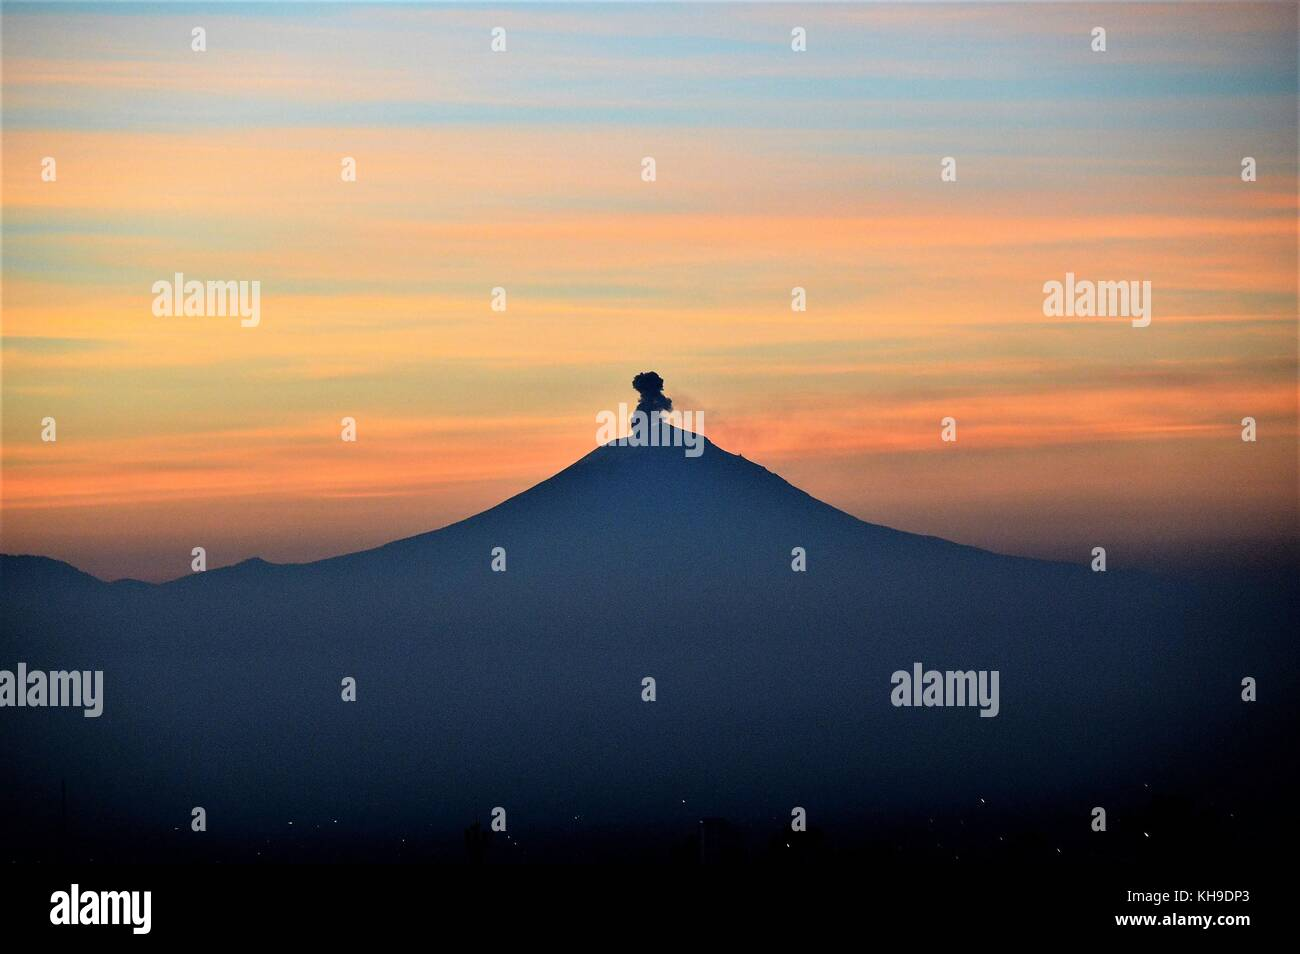 Popocatepetl Vulcano view during sunrising - Stock Image